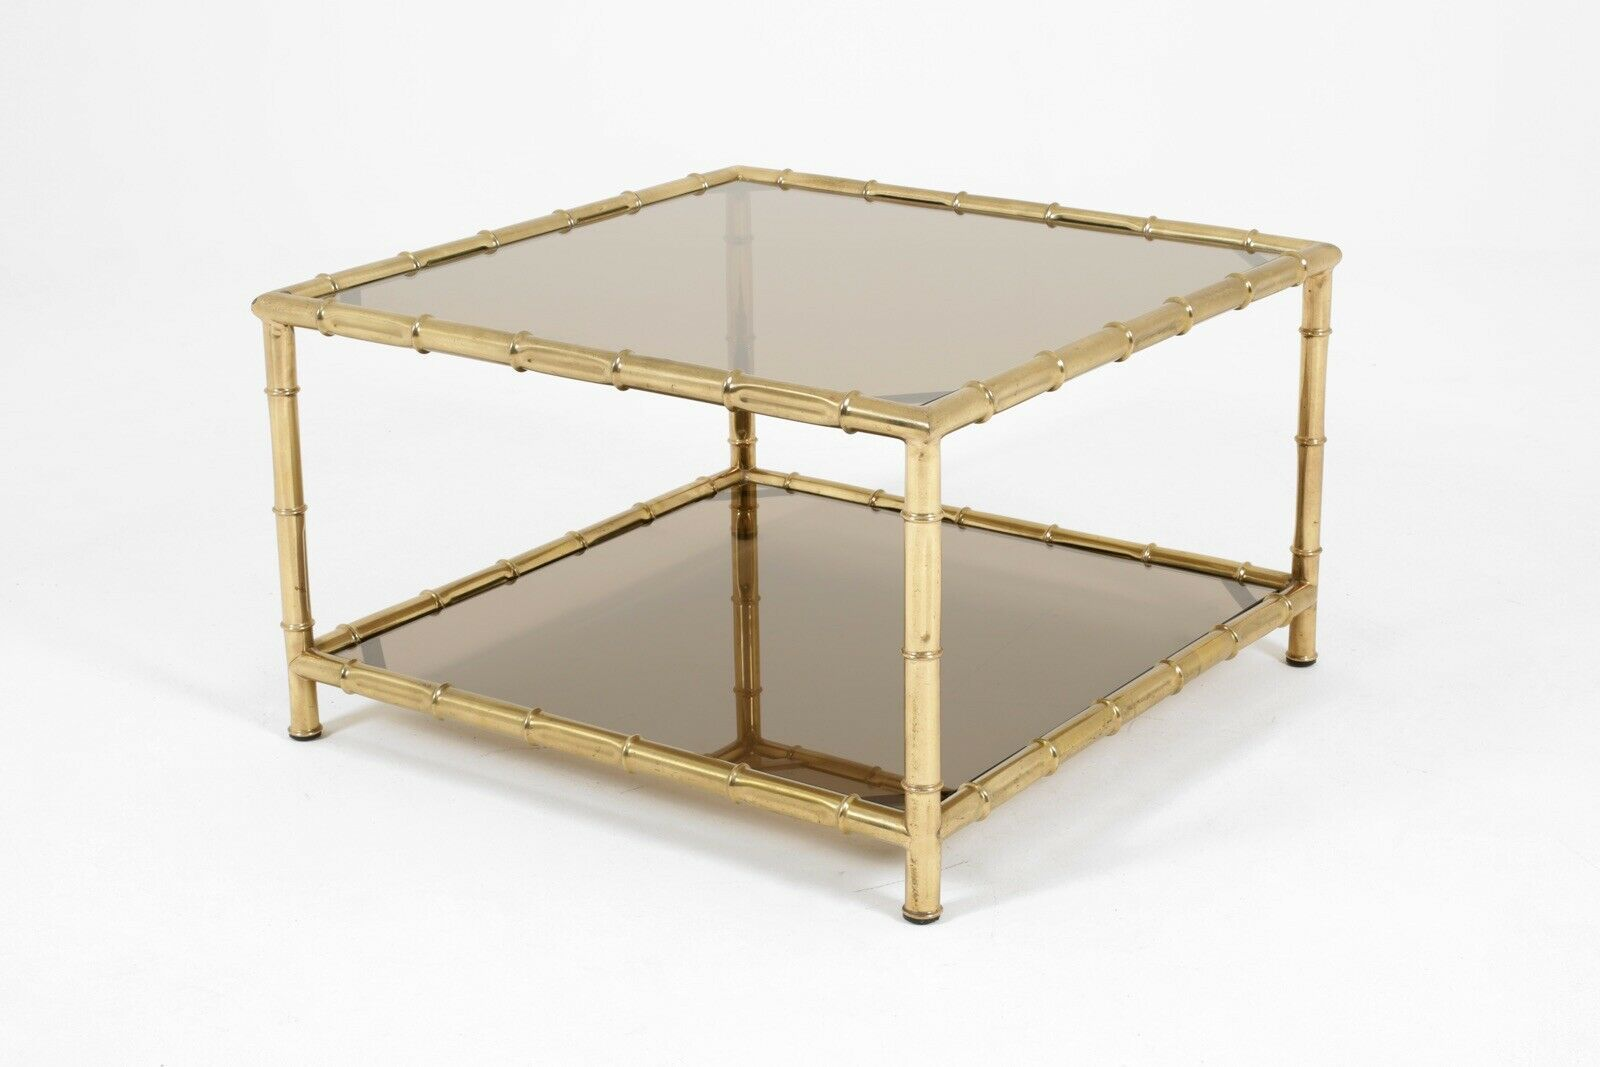 Italian Glass Coffee Table.Midcentury Italian Brass Faux Bamboo Glass Coffee Table Vintage 1970 Gold Retro